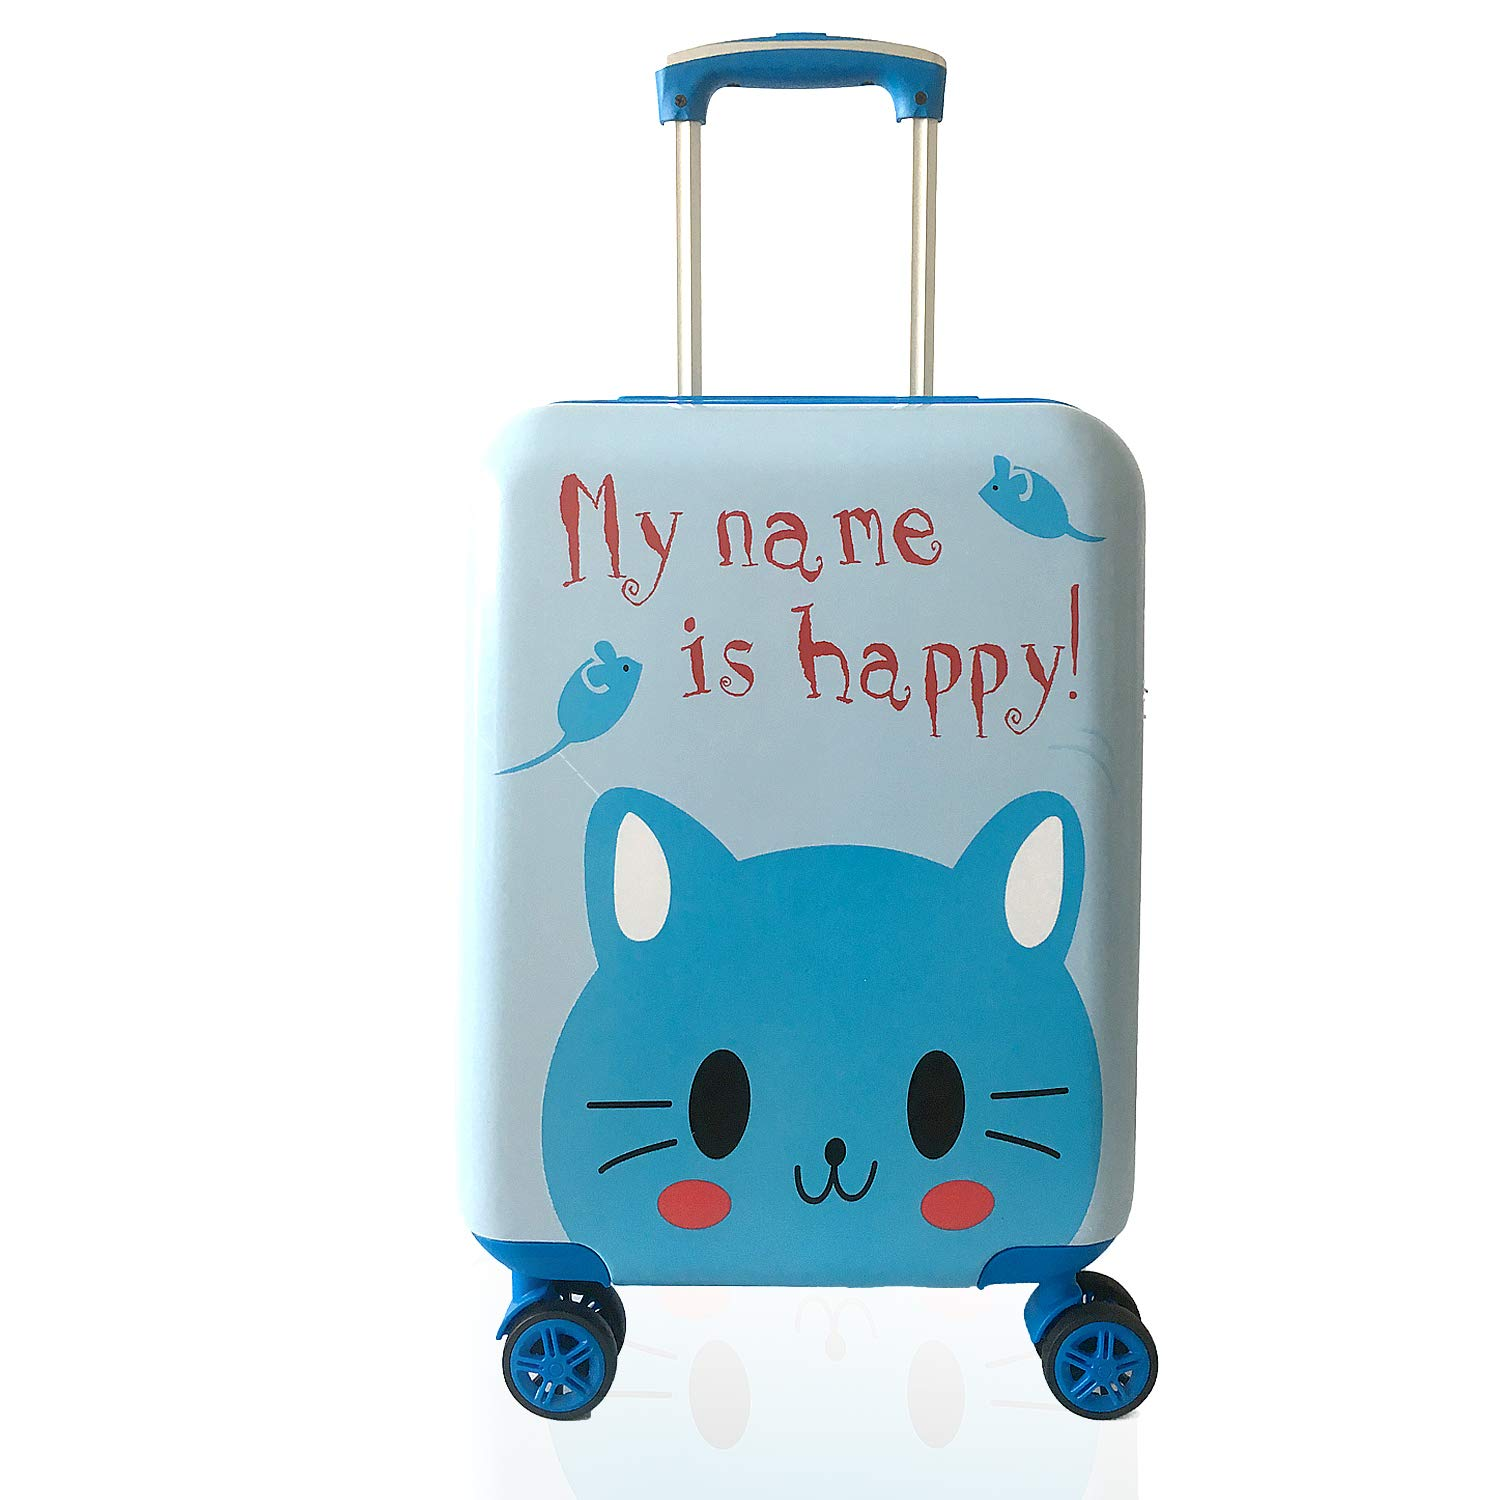 Lttxin kids' suitcase 16 inch Polycarbonate Carry On Luggage, Lovely, One Size,Children travel,cat,blue